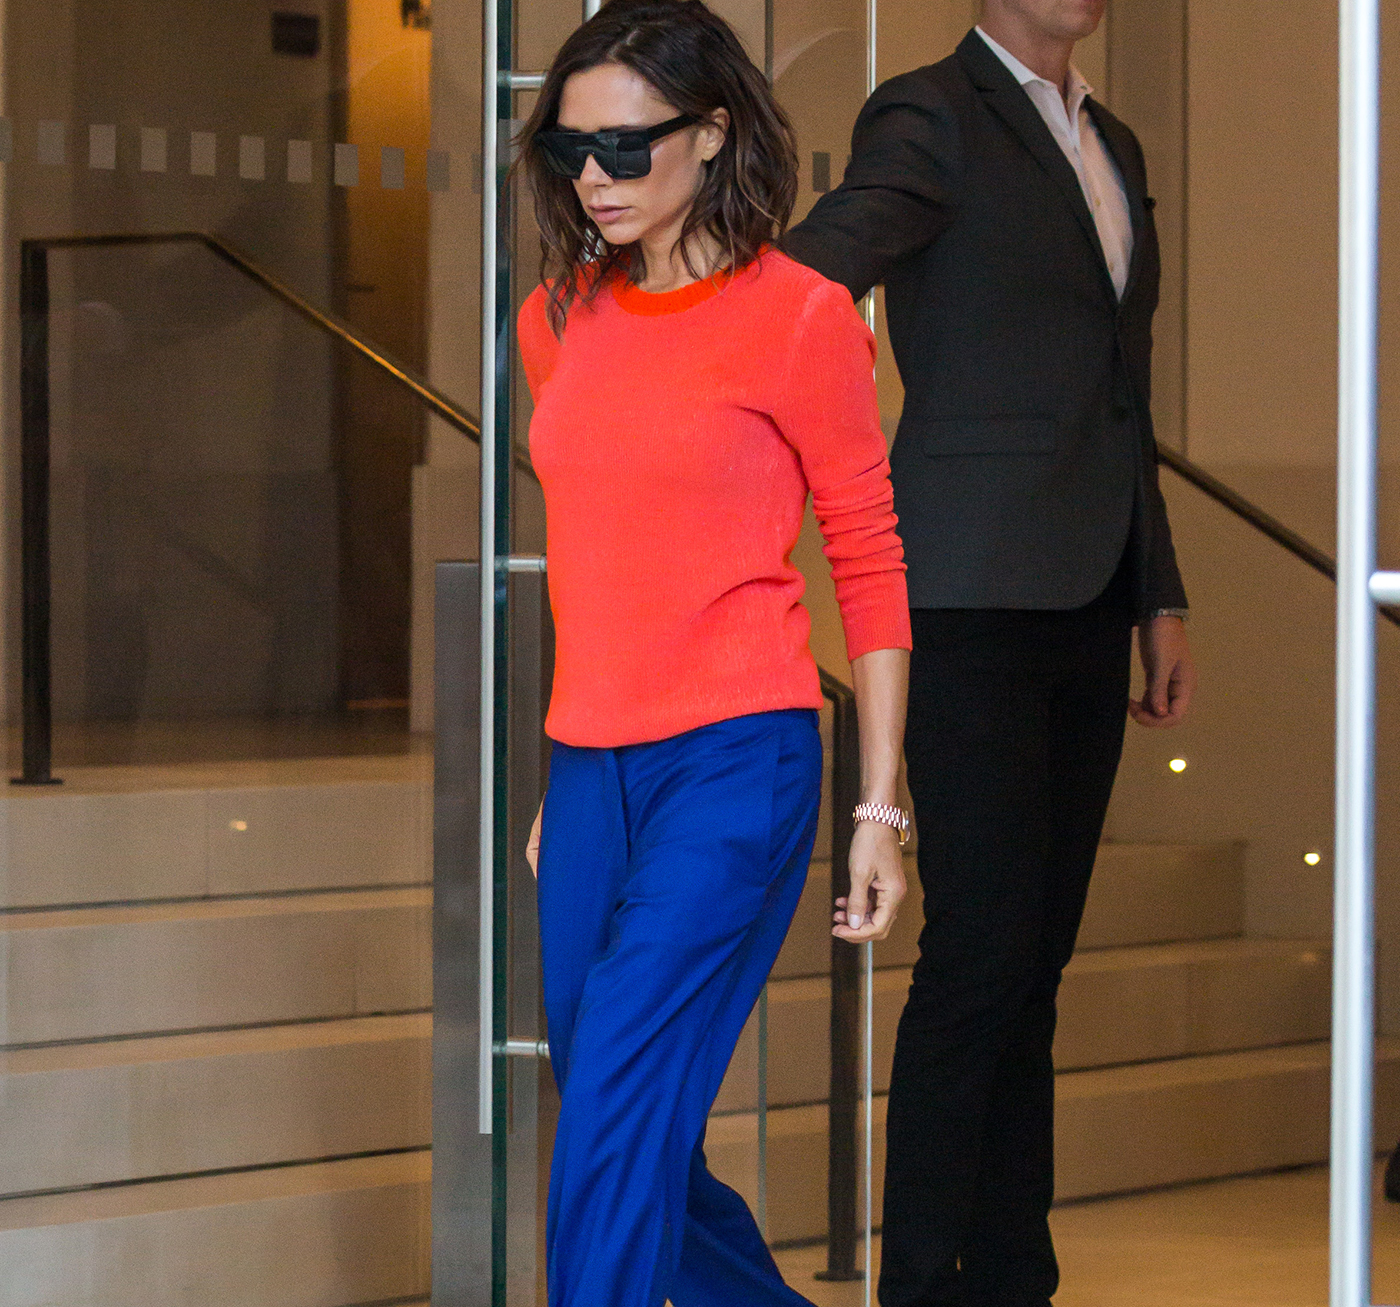 Victoria Beckham. Posh in New York.